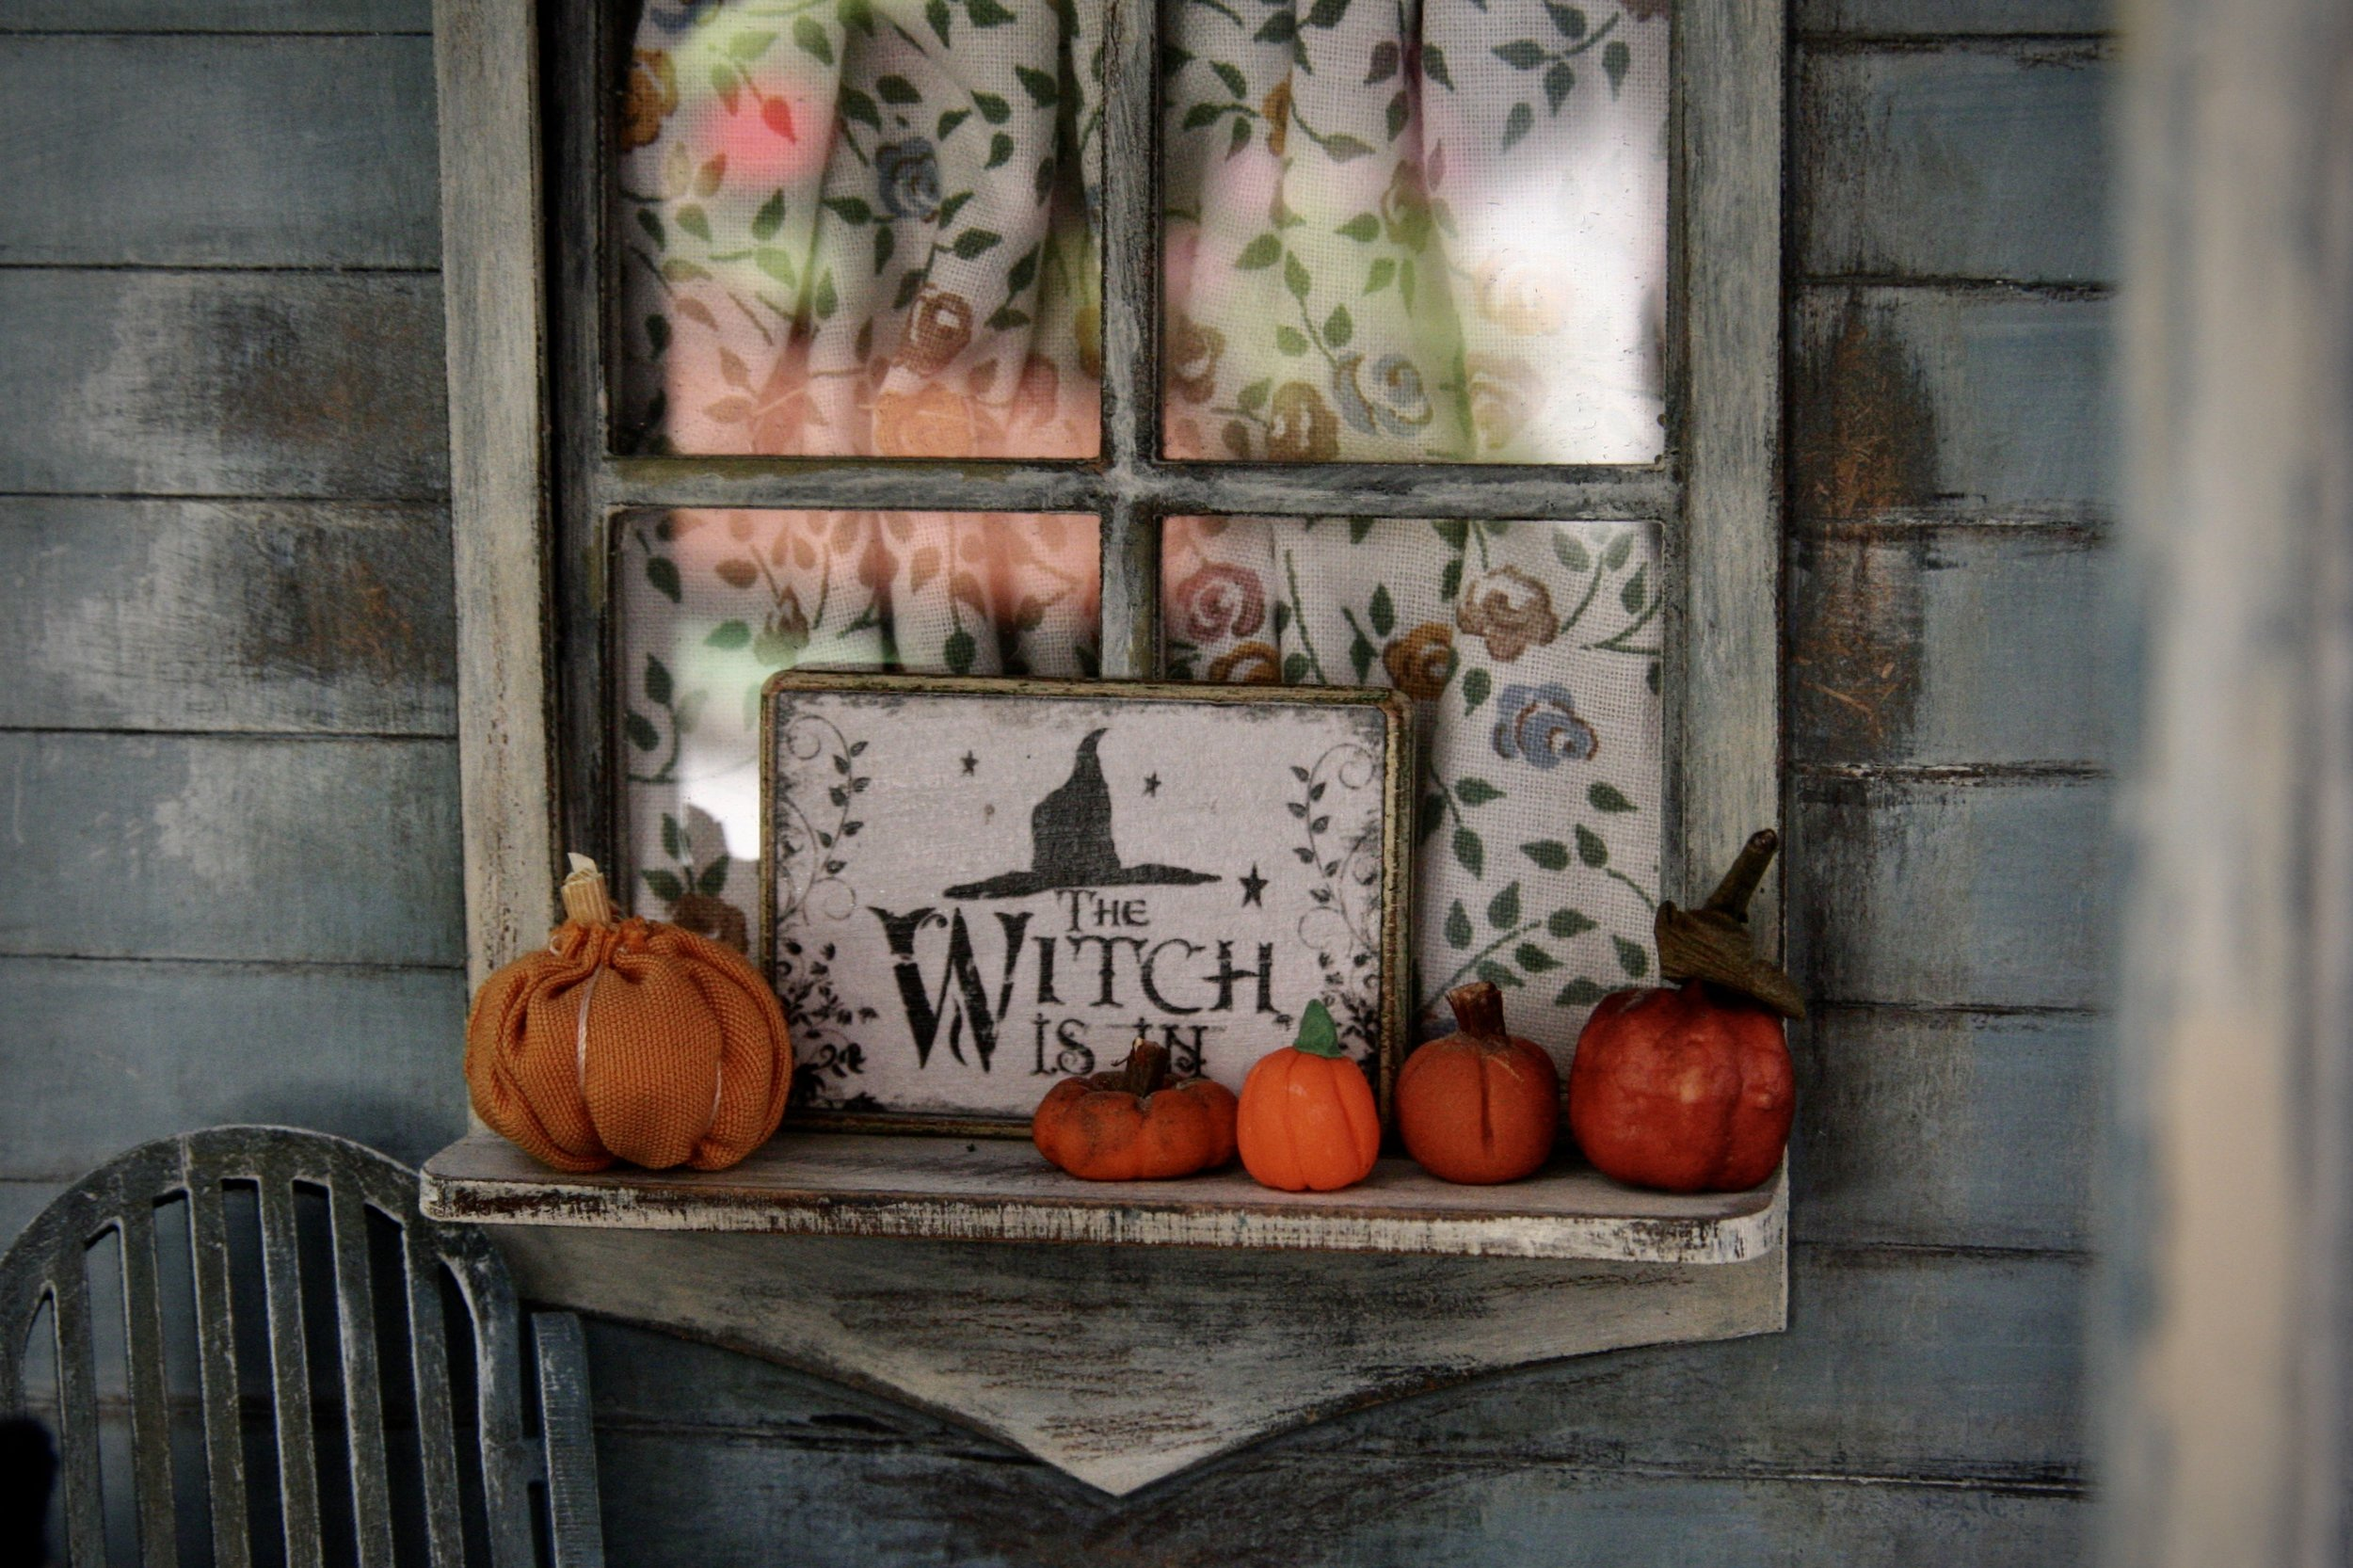 Come let us bewitch you! Now offering several exciting new treatments.